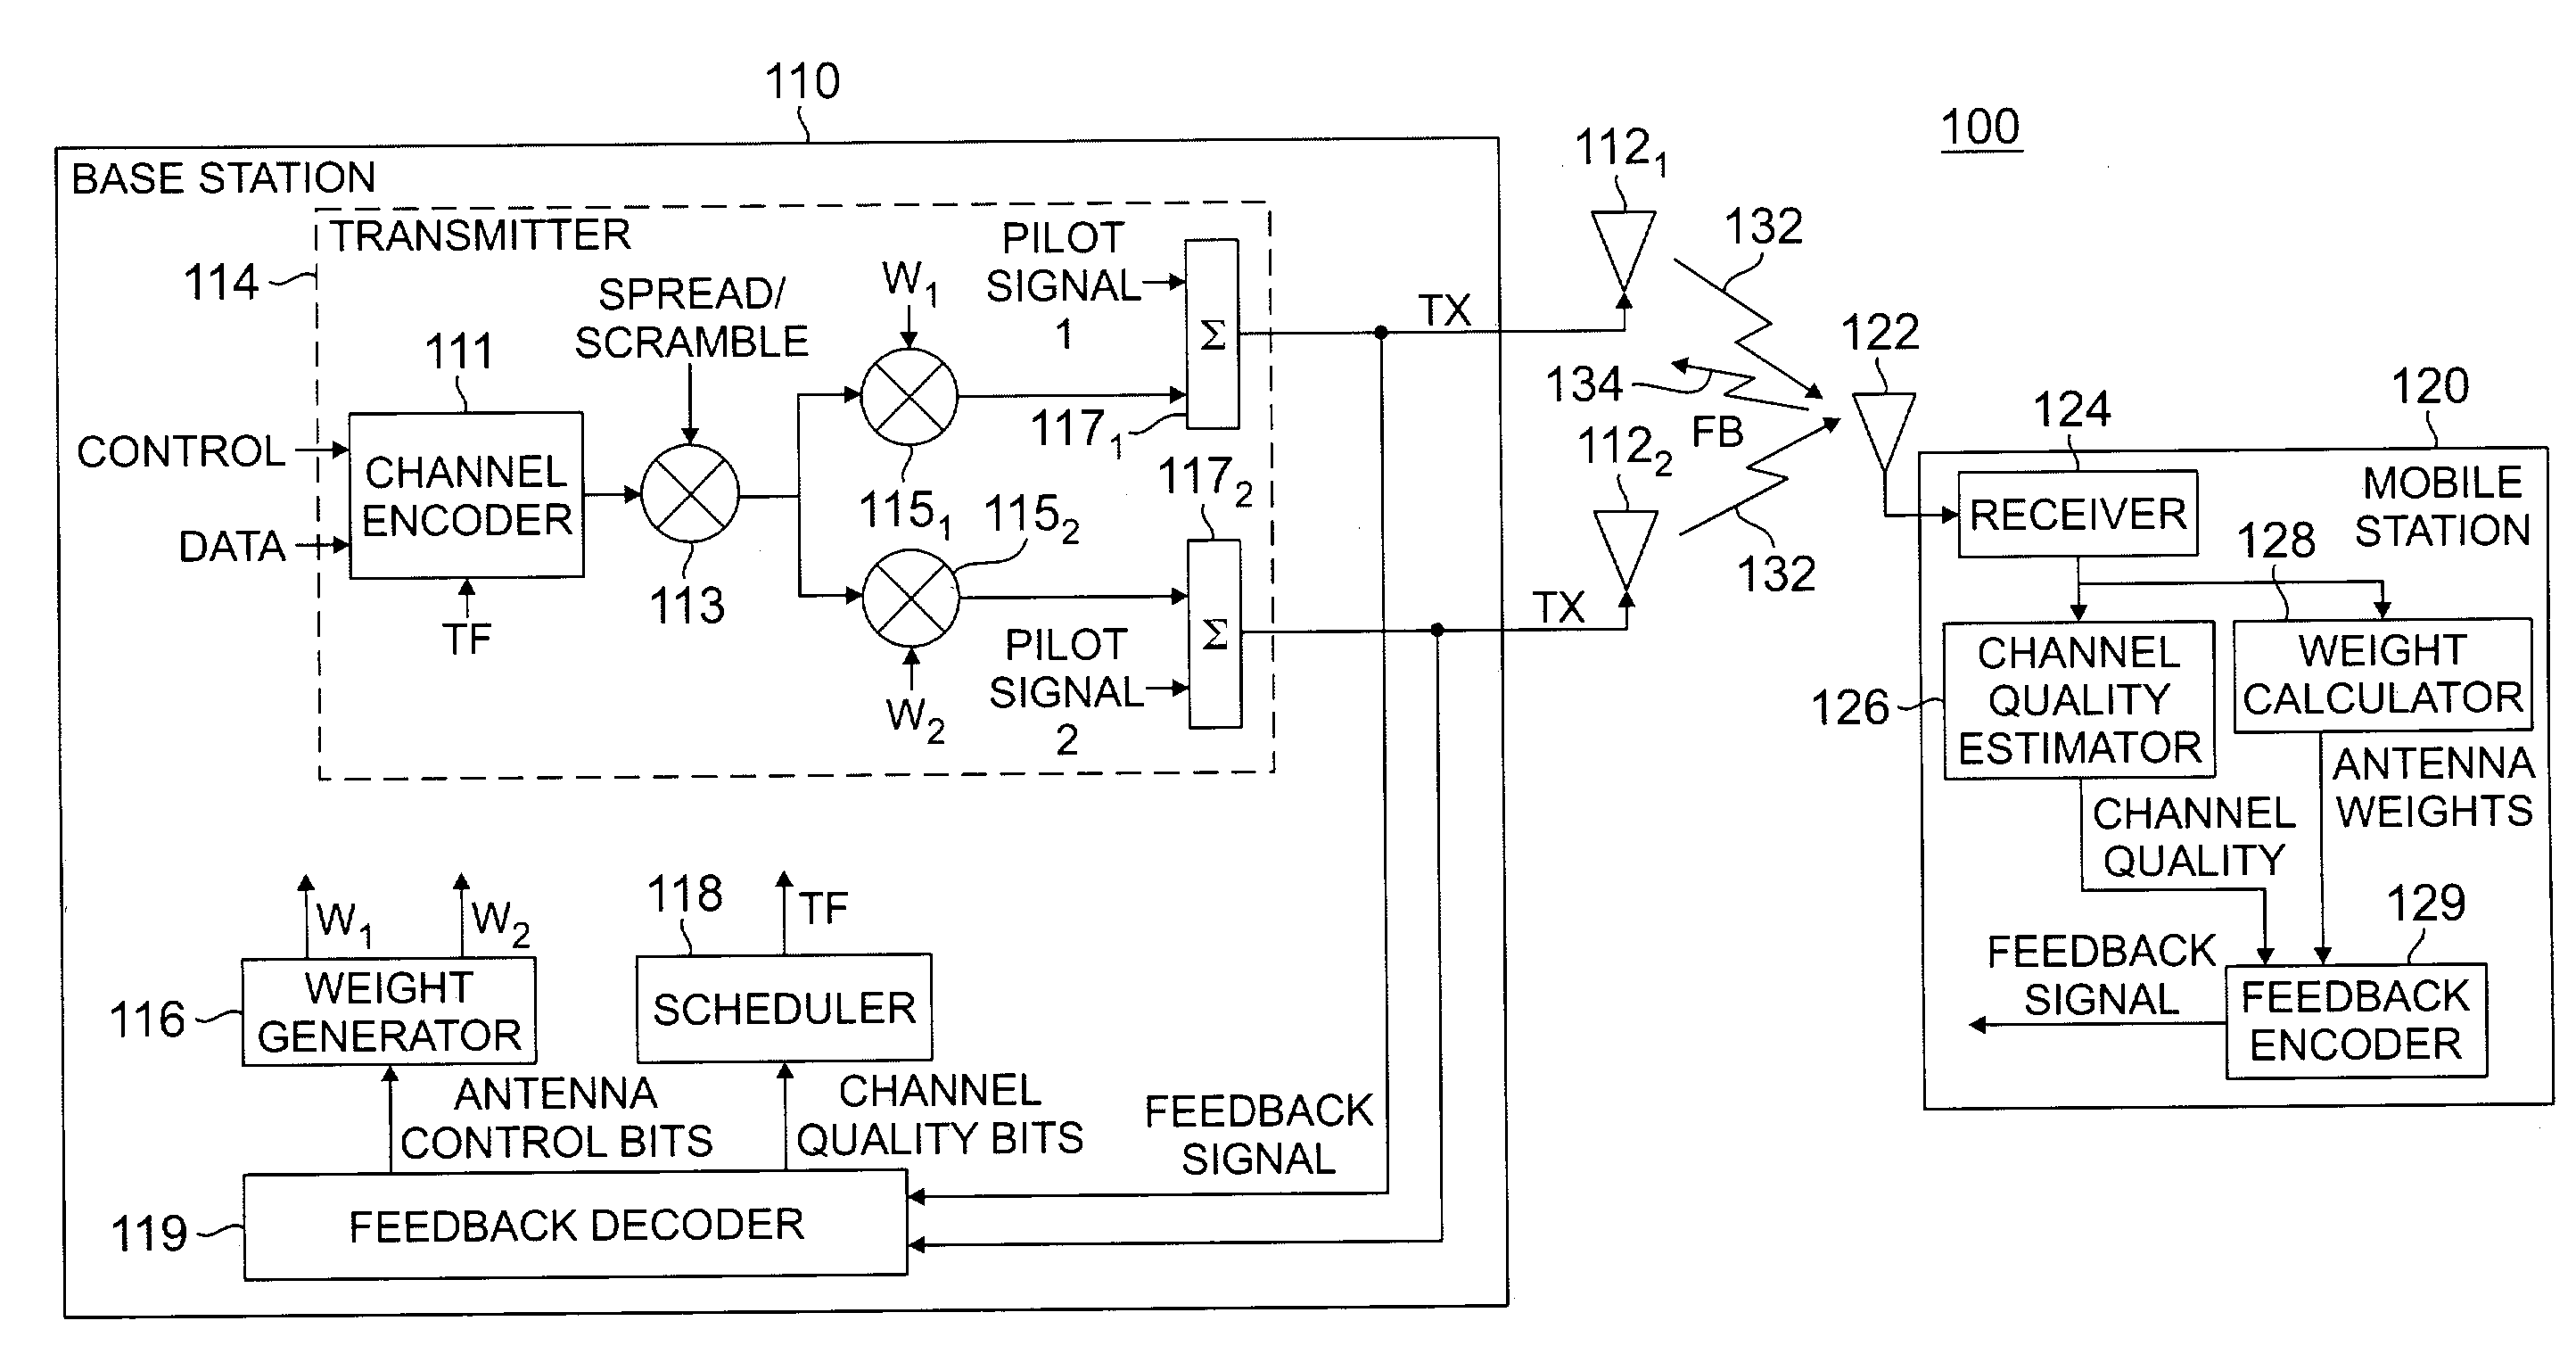 Patent US7116944 - Method and apparatus for feedback error detection